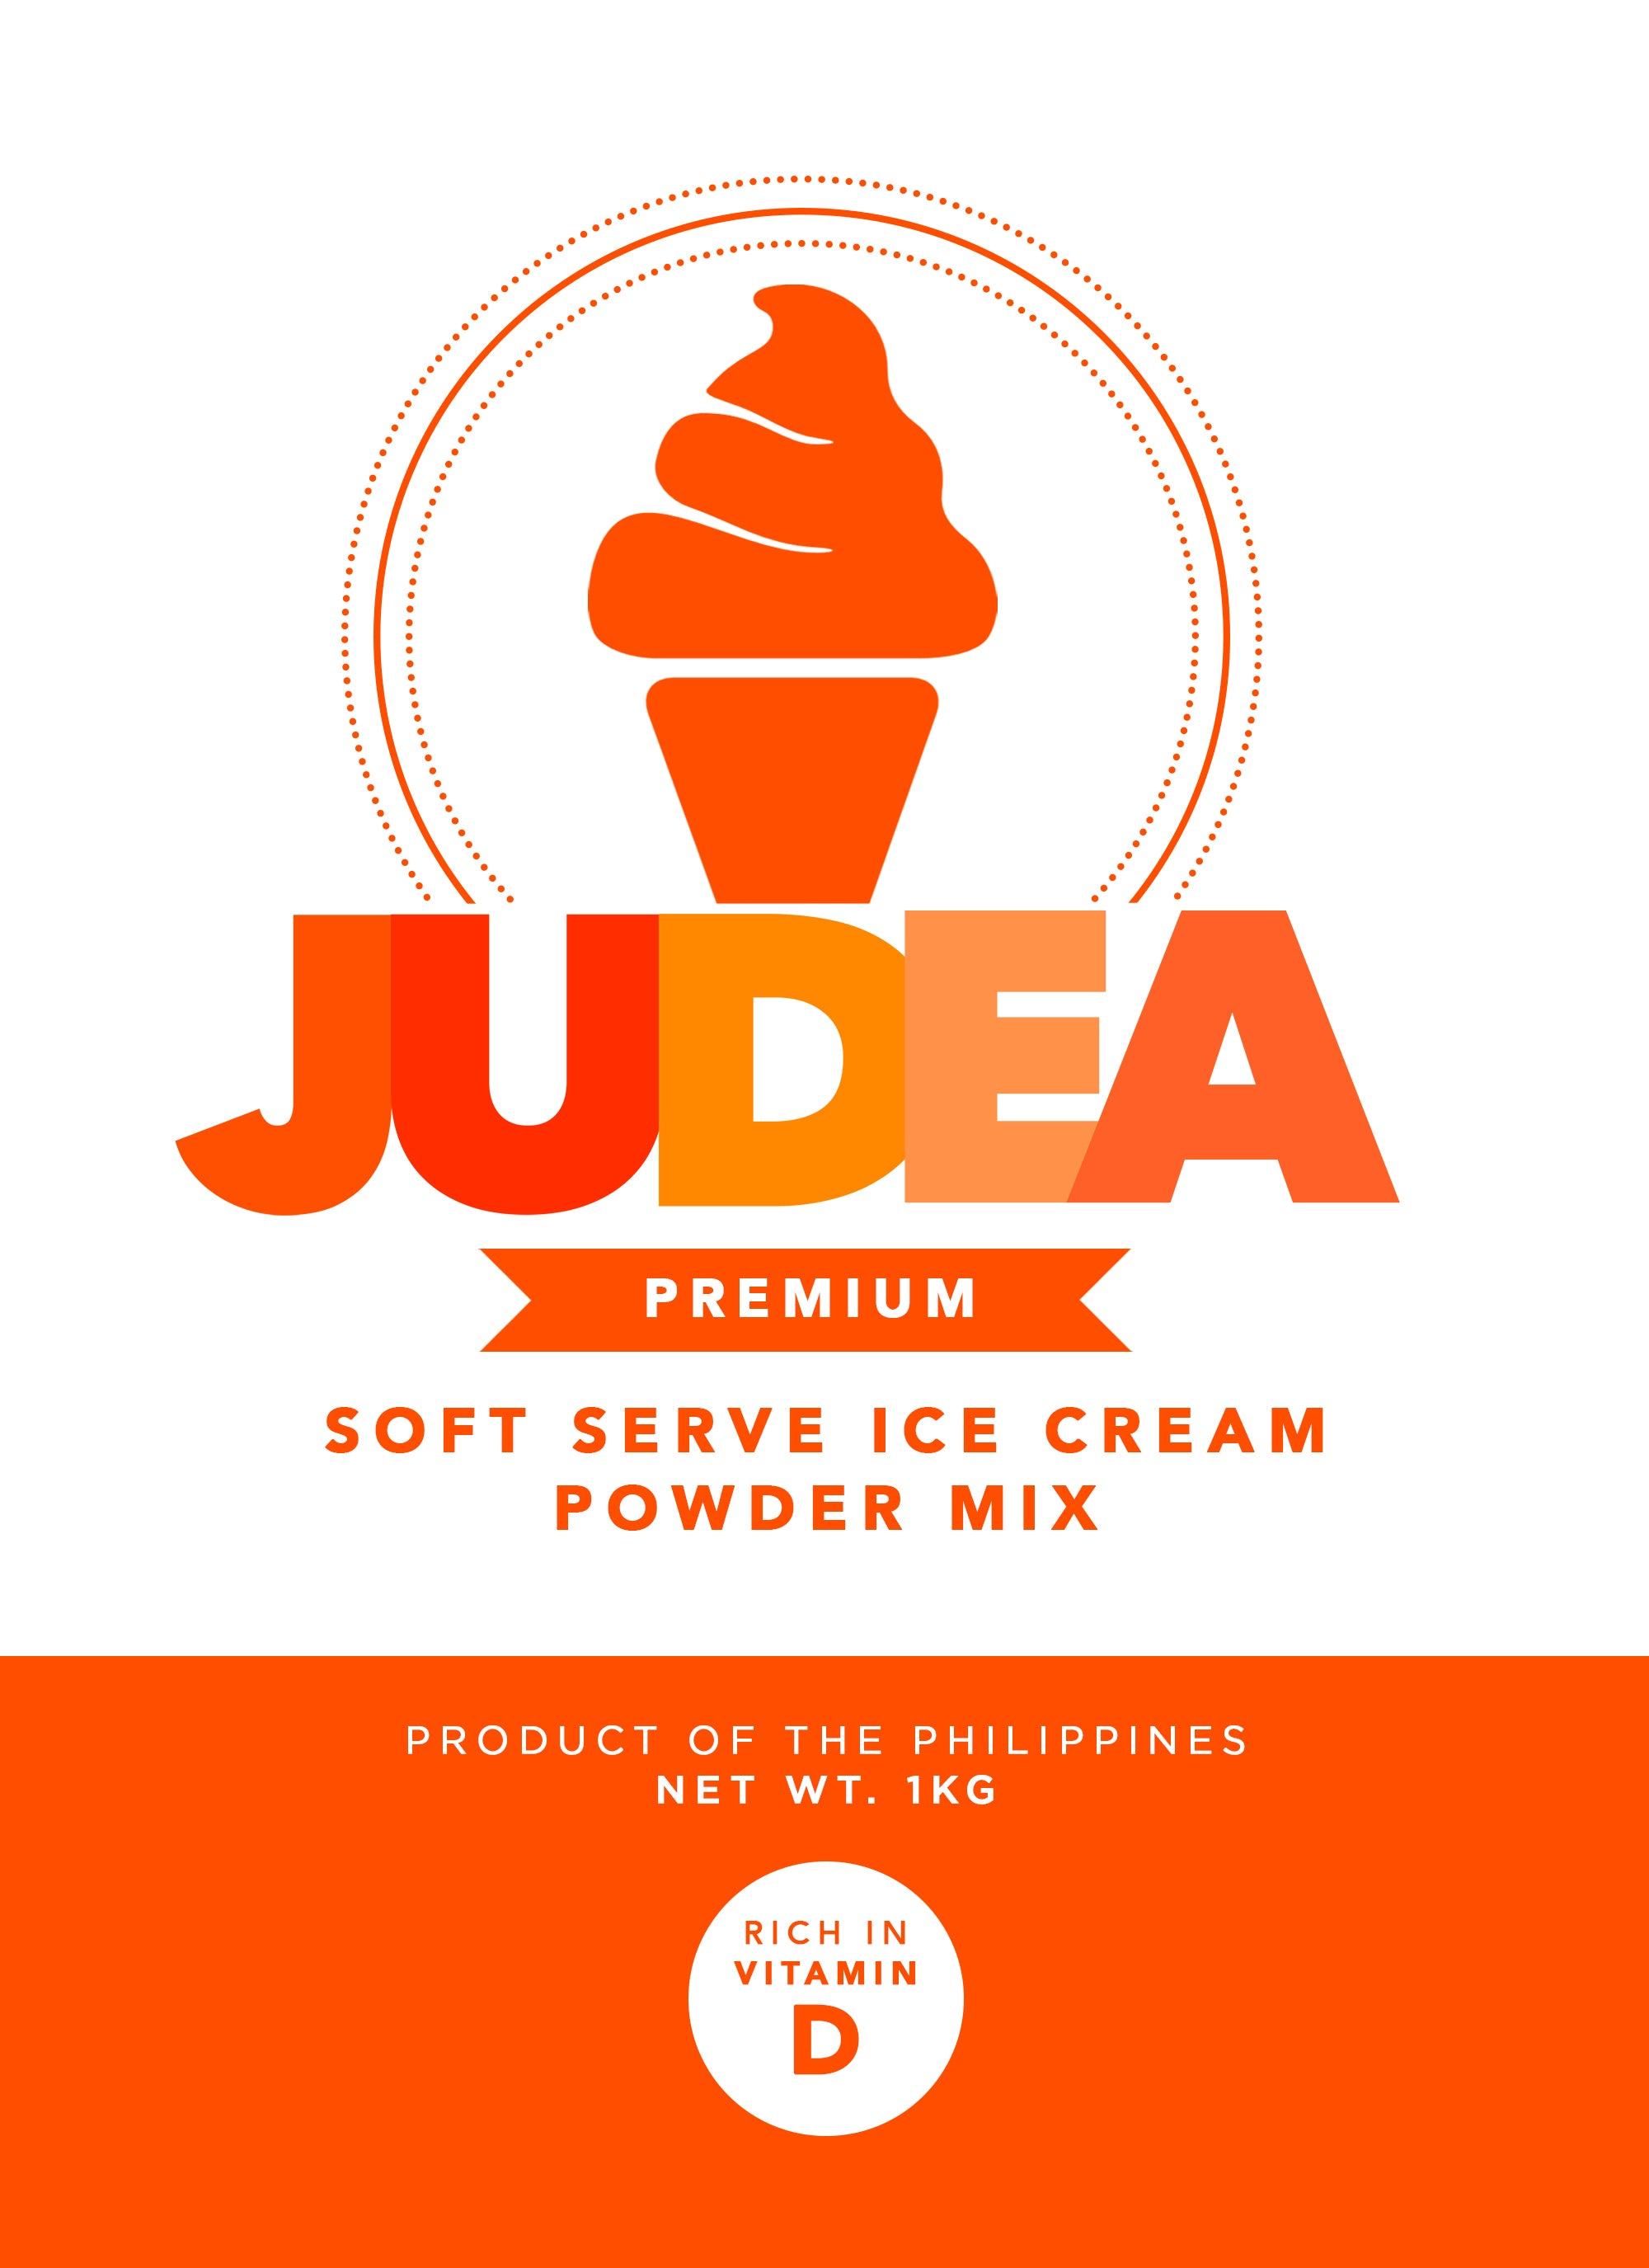 Judea Soft Serve Ice Cream Premix - Premium